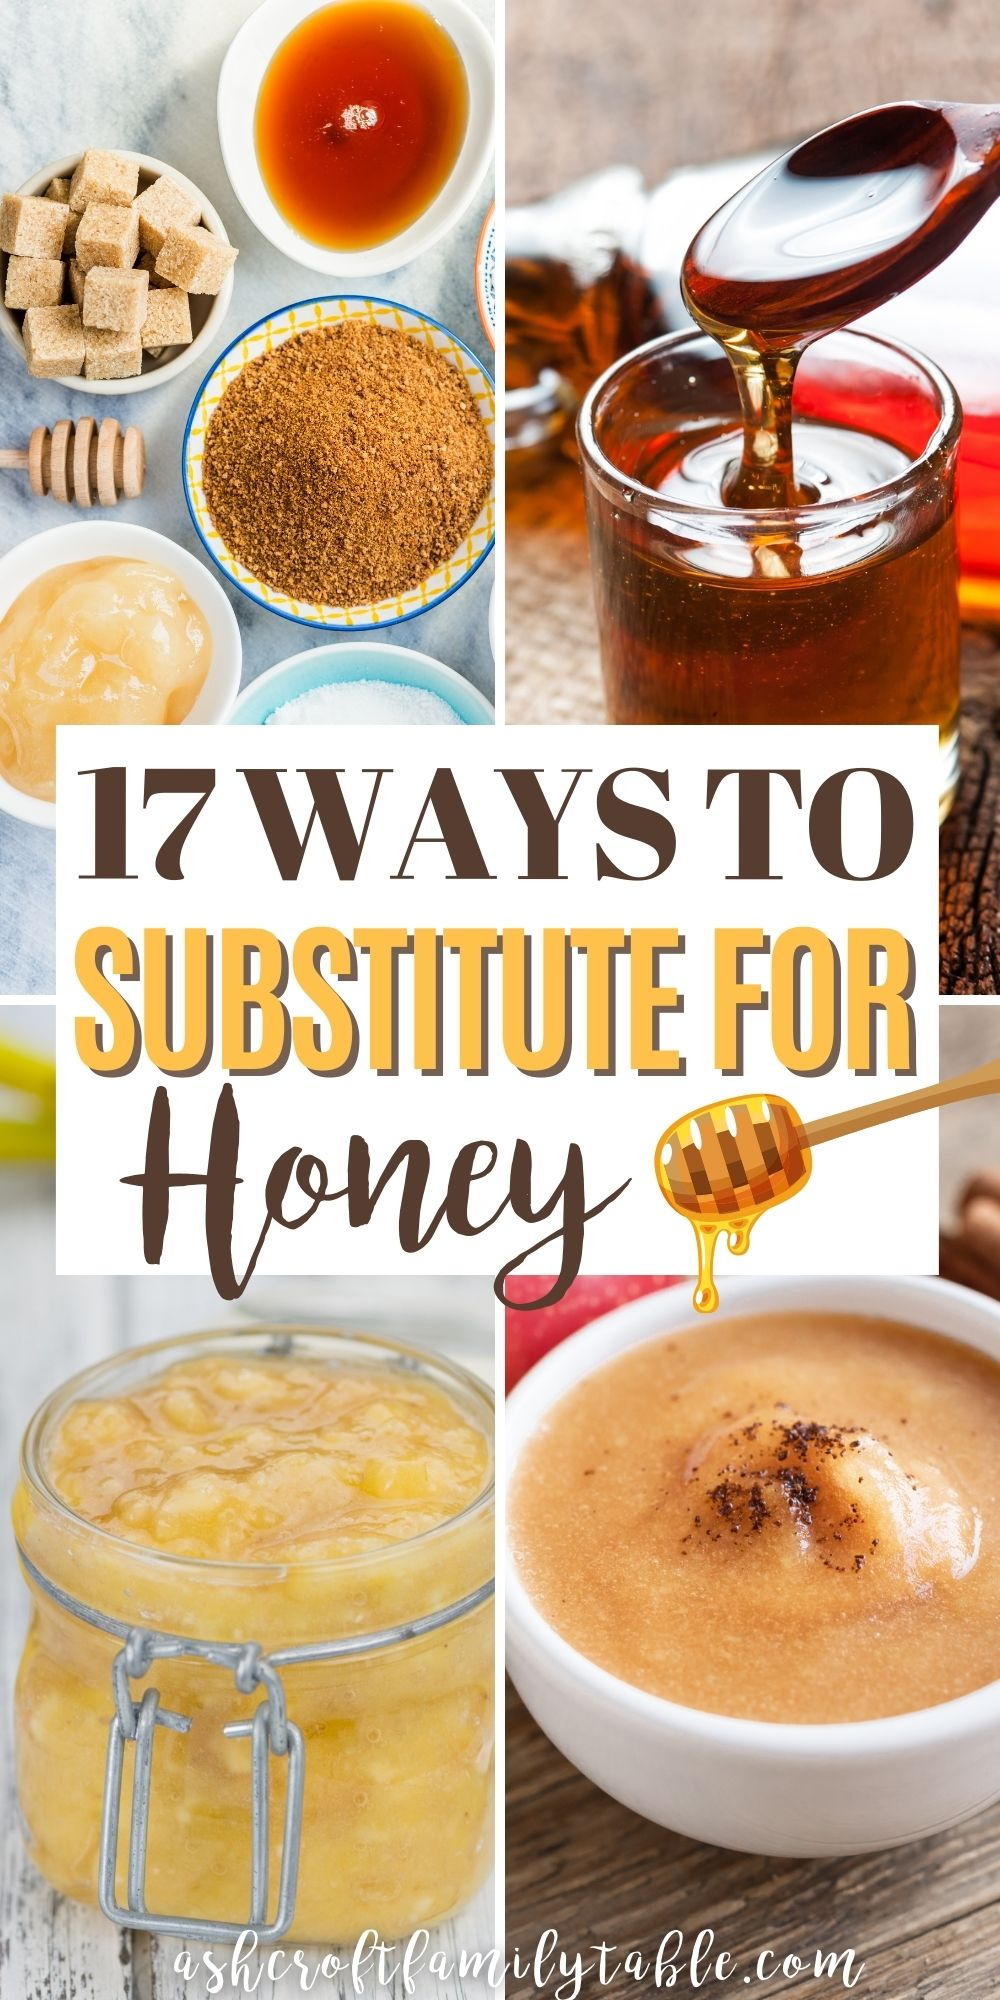 Pinterest graphic with text and collage of ingredients used to substitute for honey.